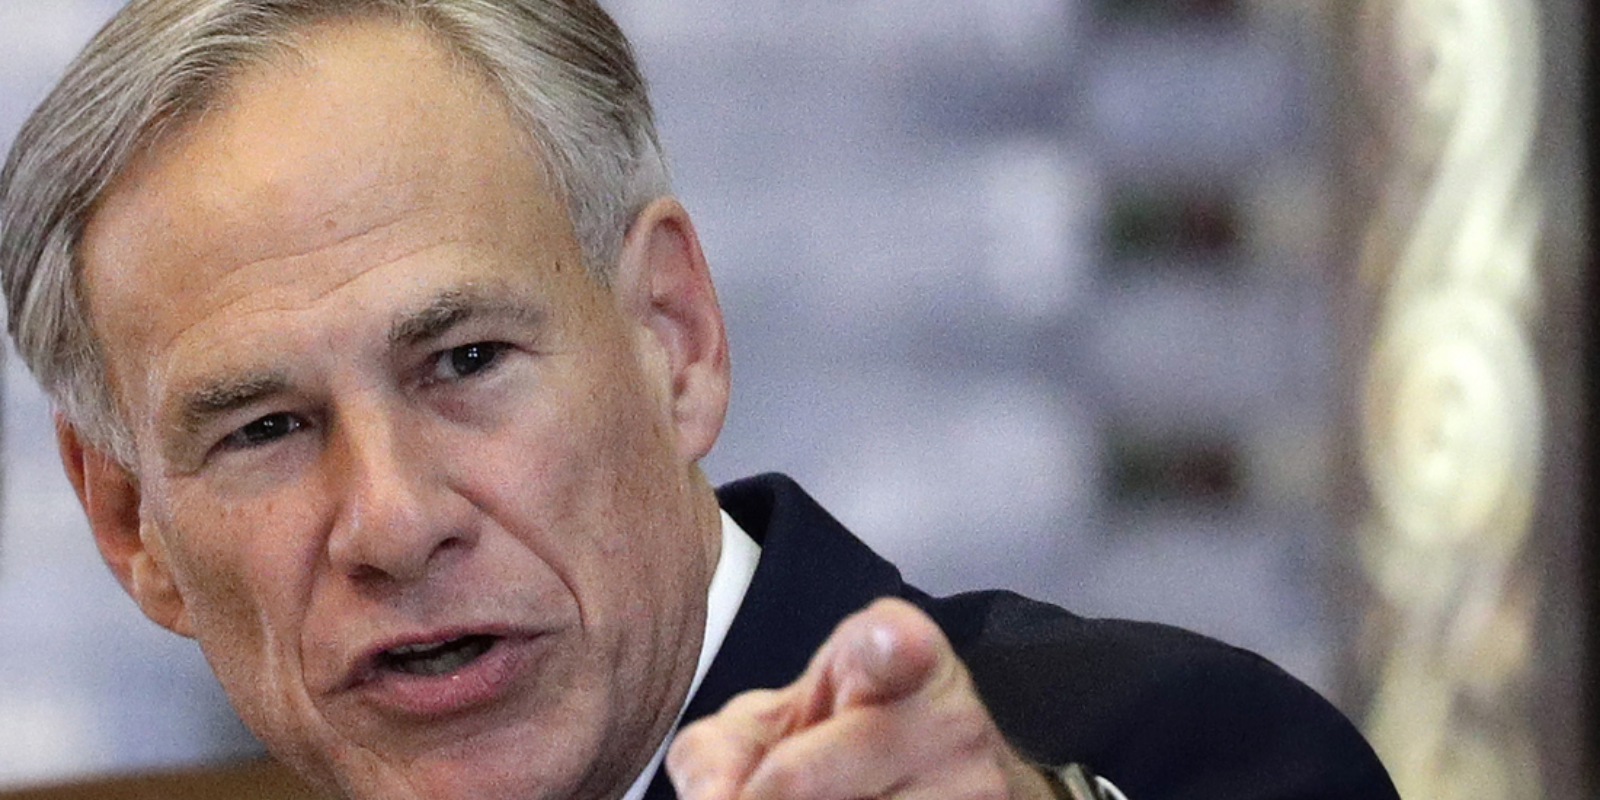 Gov. Abbott defunds Texas legislature after state Democrats stage walk-out to block voting bill